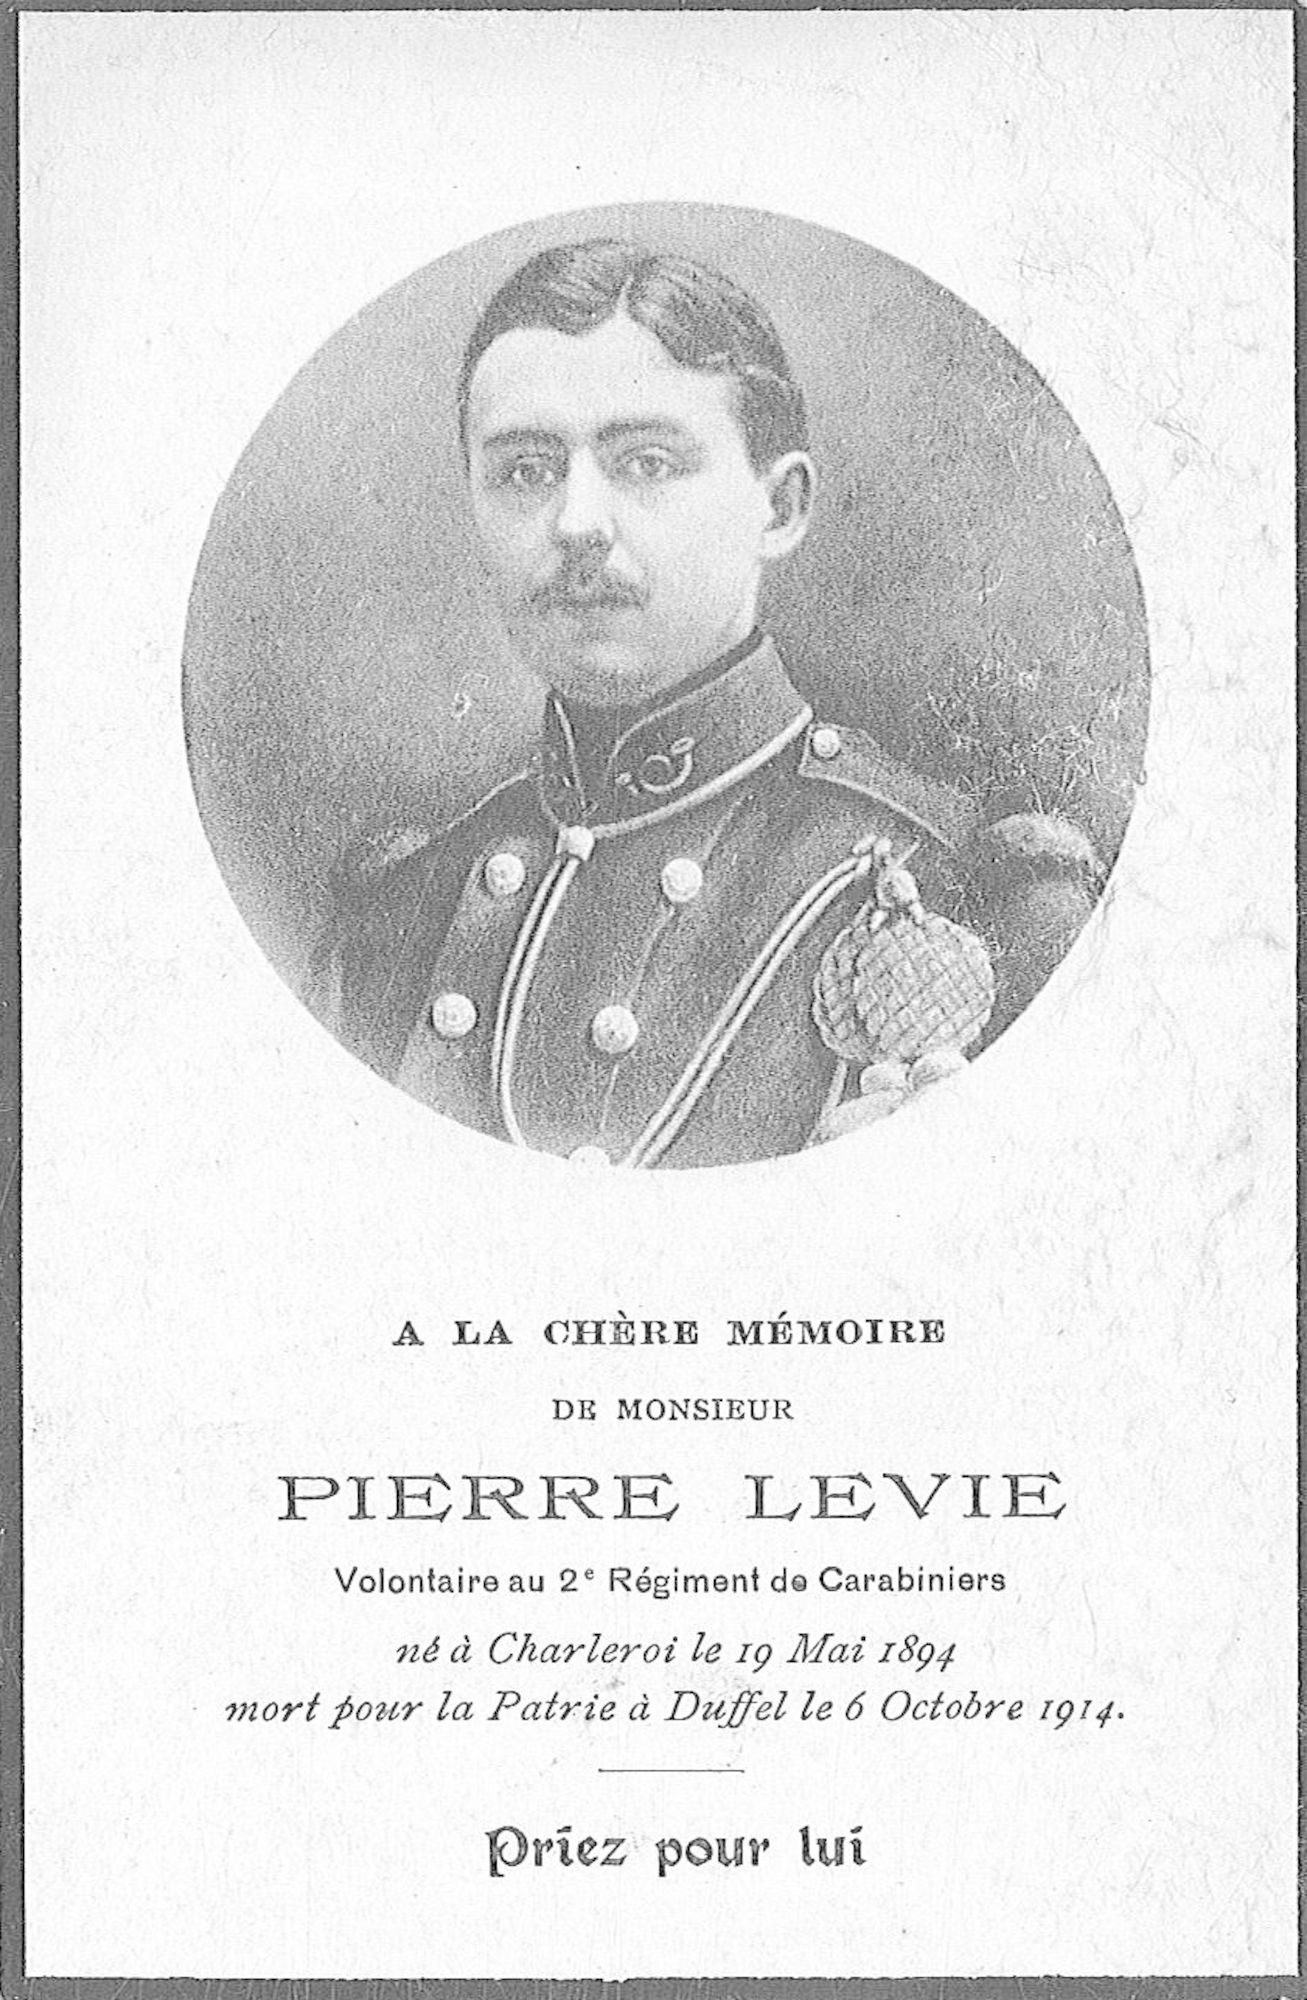 Pierre Levie